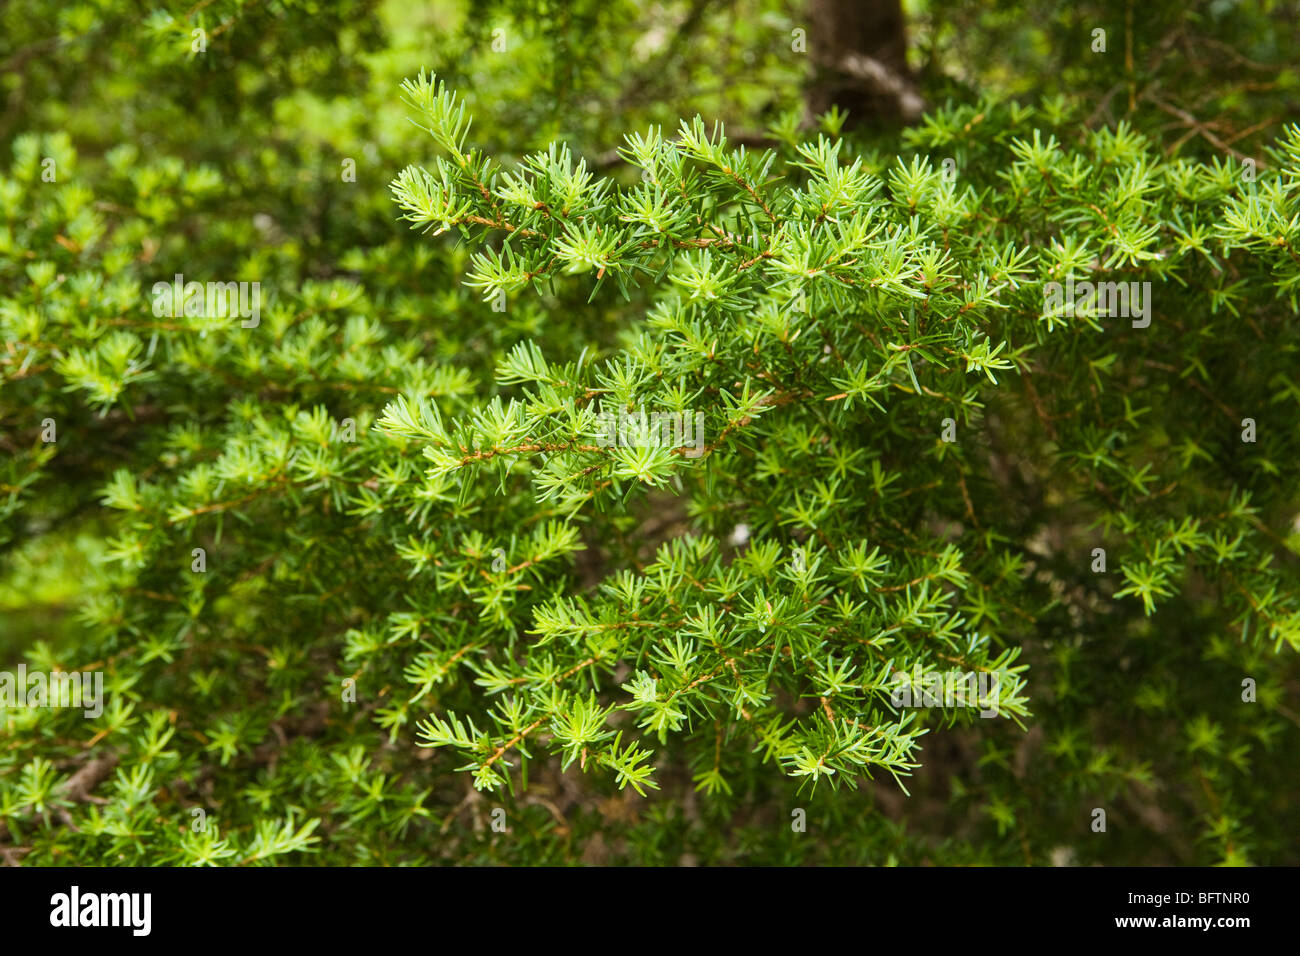 Closeup of a fir trees needles in the central Cascade Mountains of Washington State, USA. - Stock Image